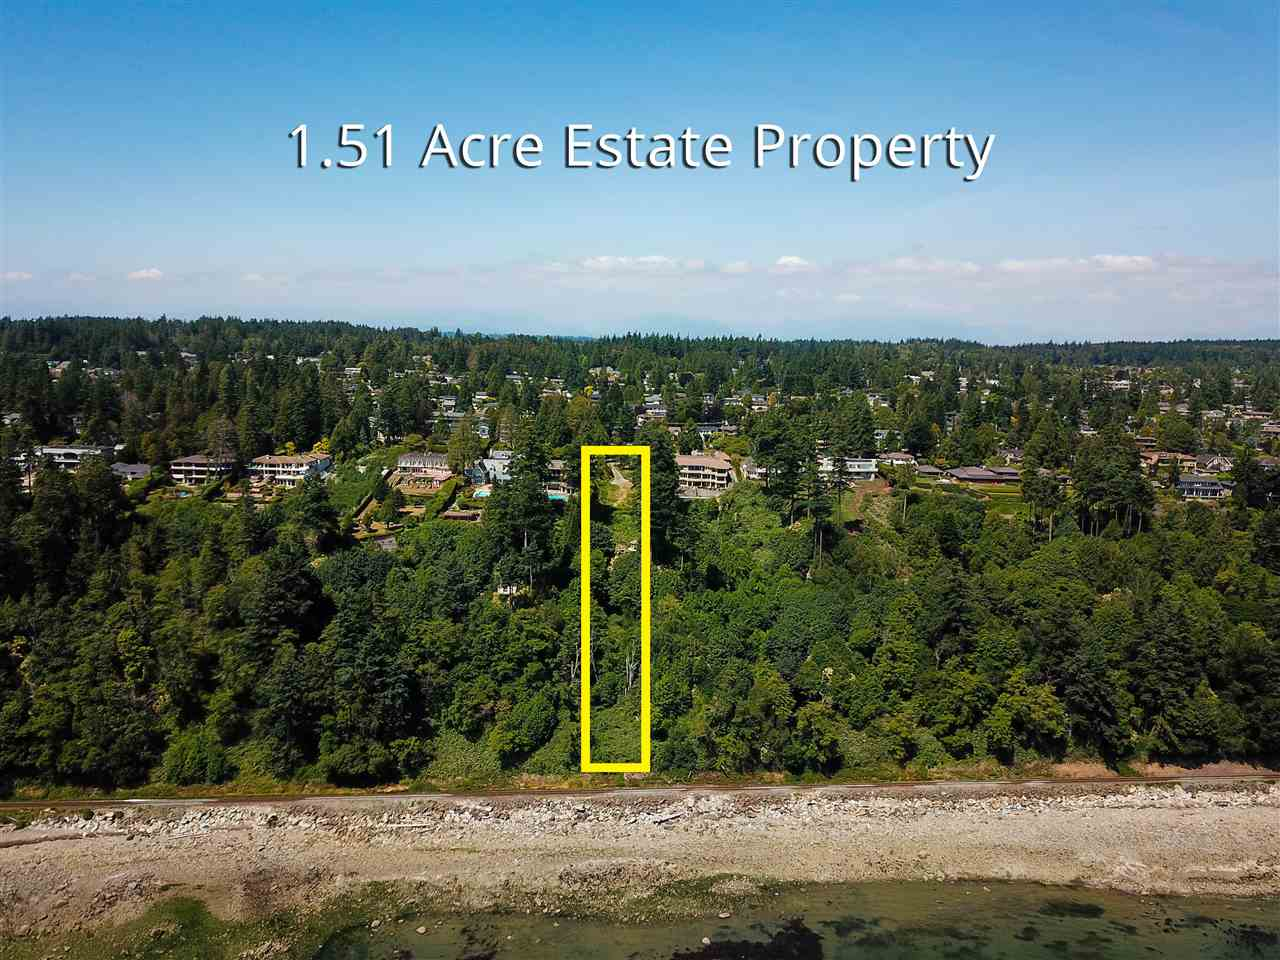 Truly one of a kind! Just over 1.5 AC located on the South side of Marine Dr. w/a panoramic breathtaking ocean view. Fabulous opportunity to build your dream home on this 65775 SF Estate Building Lot with incredible privacy and sensational full view of Pacific Ocean, Islands, Mount Baker and glorious sunsets. One of the finest waterfront ESTATE properties in White Rock.